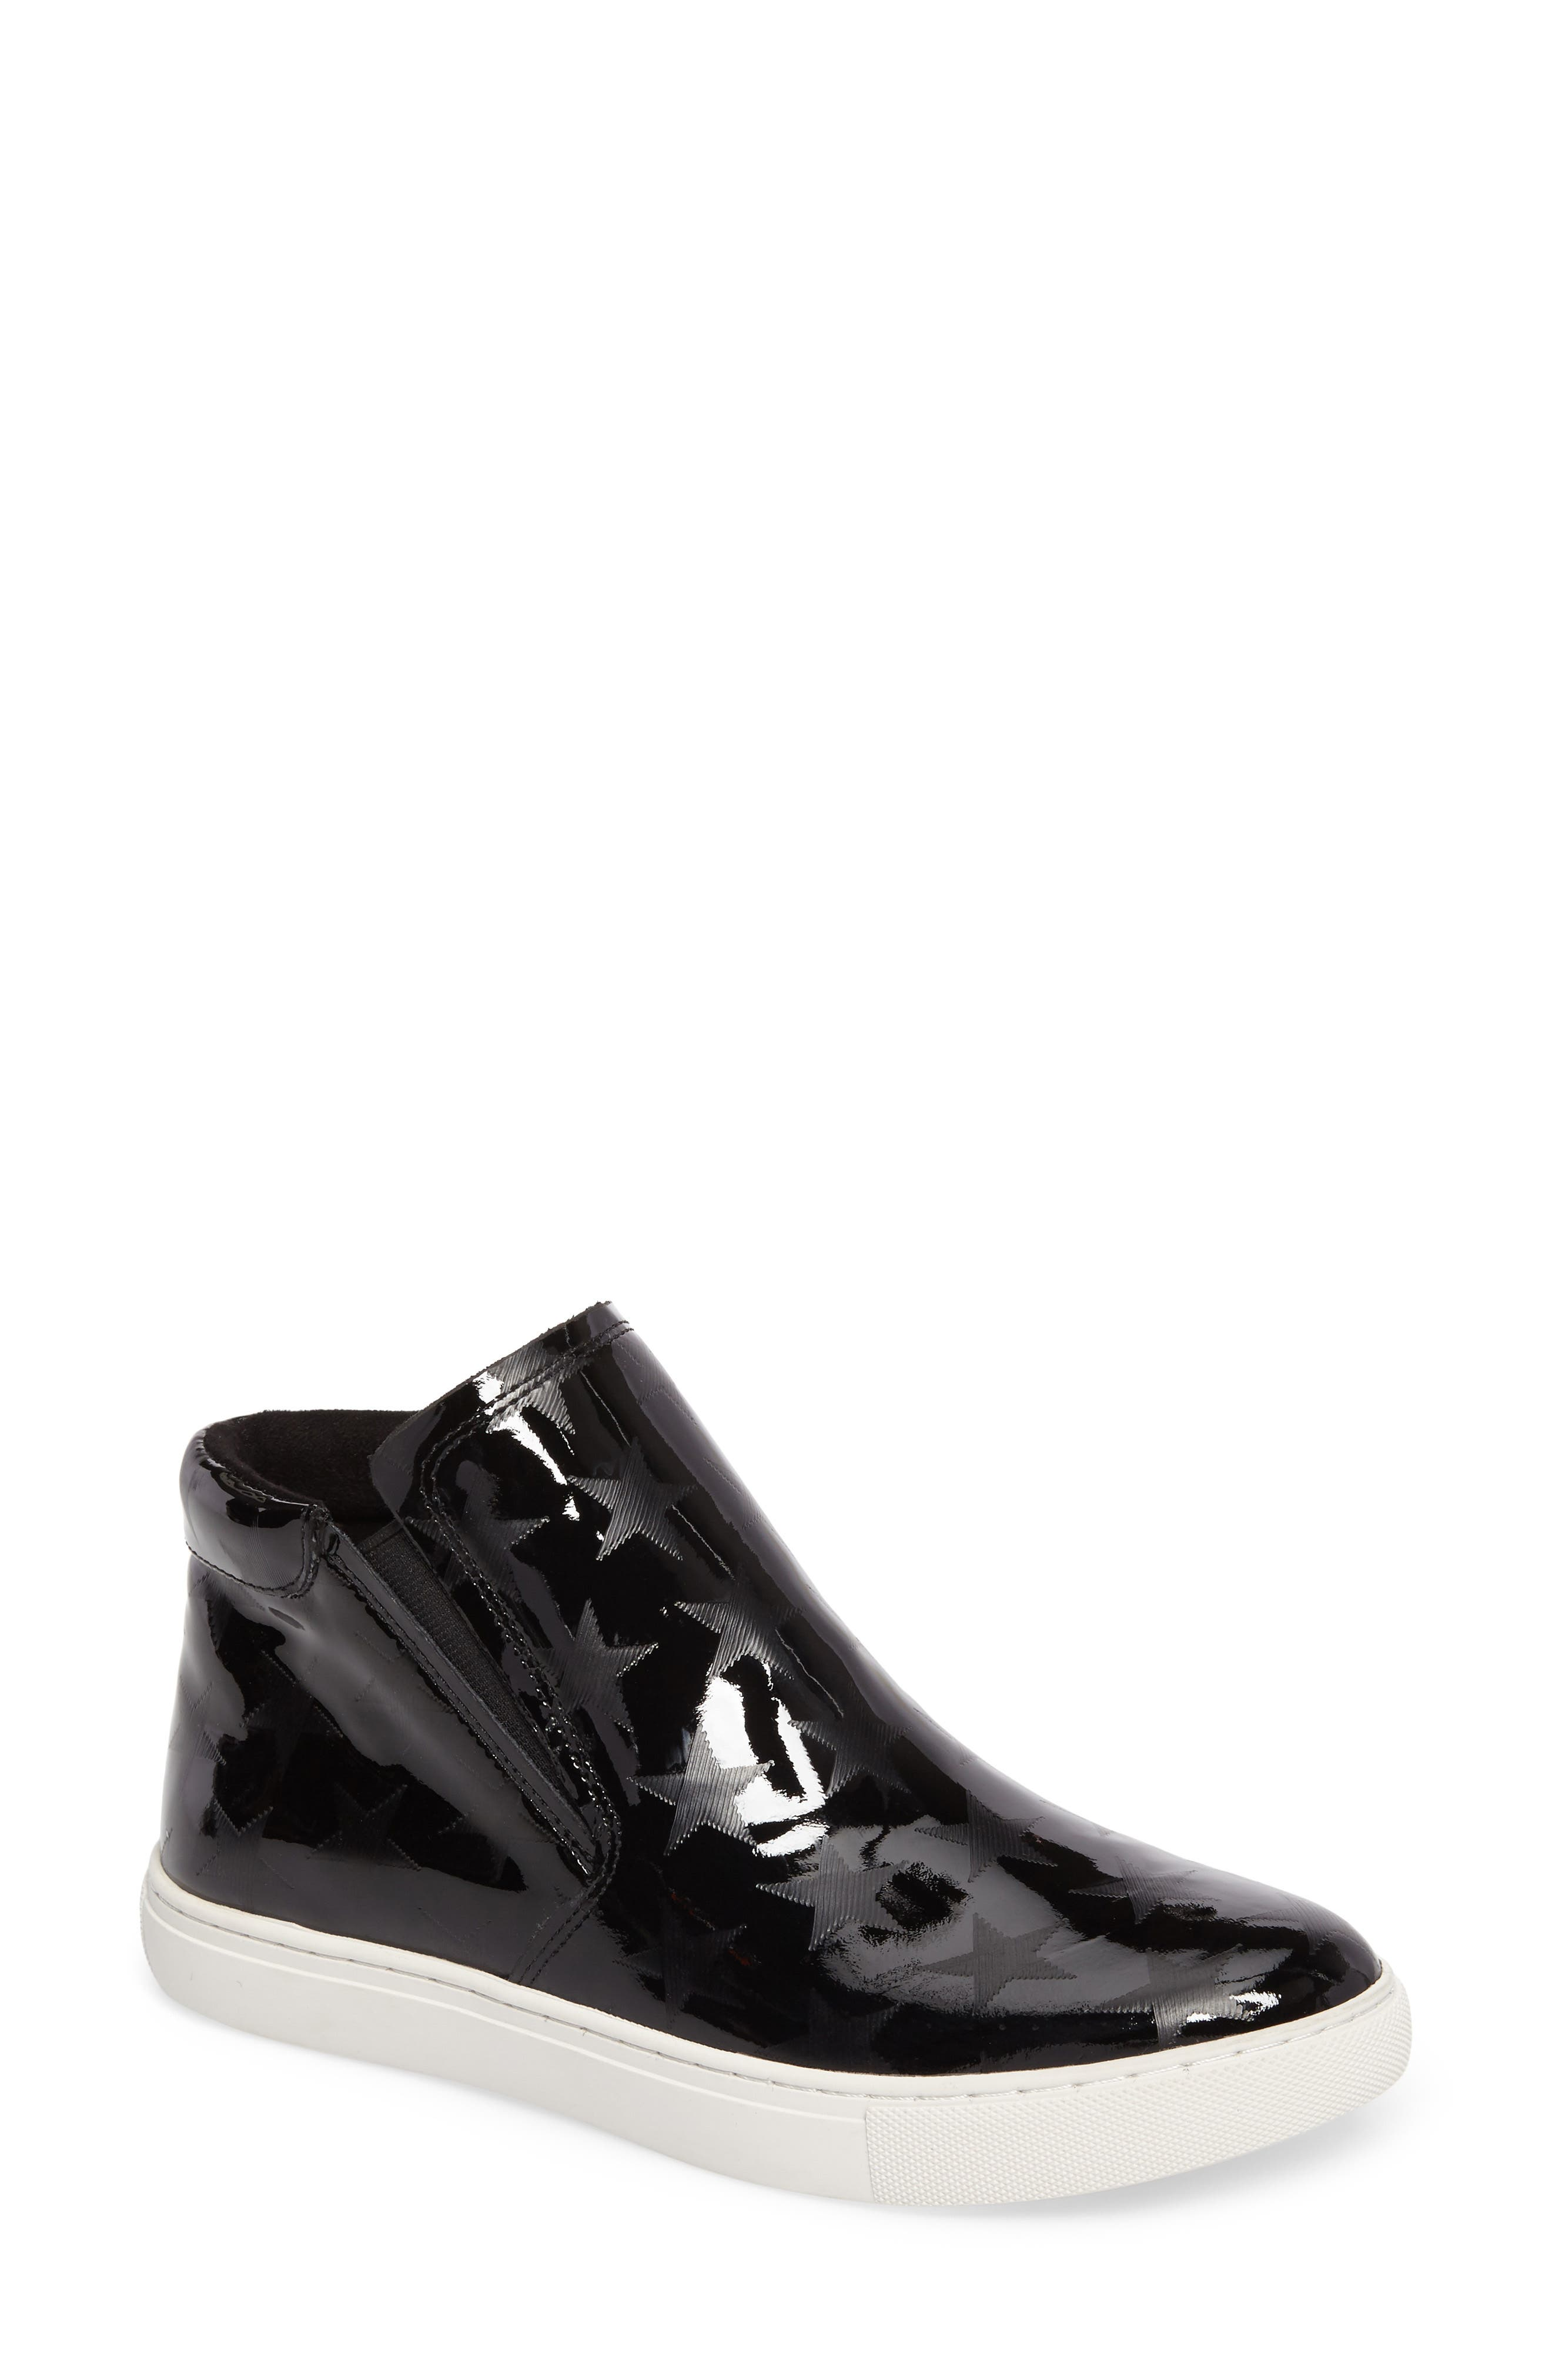 Kenneth Cole New York Kalvin 3 Crystal Embellished Mid Top Sneaker (Women)